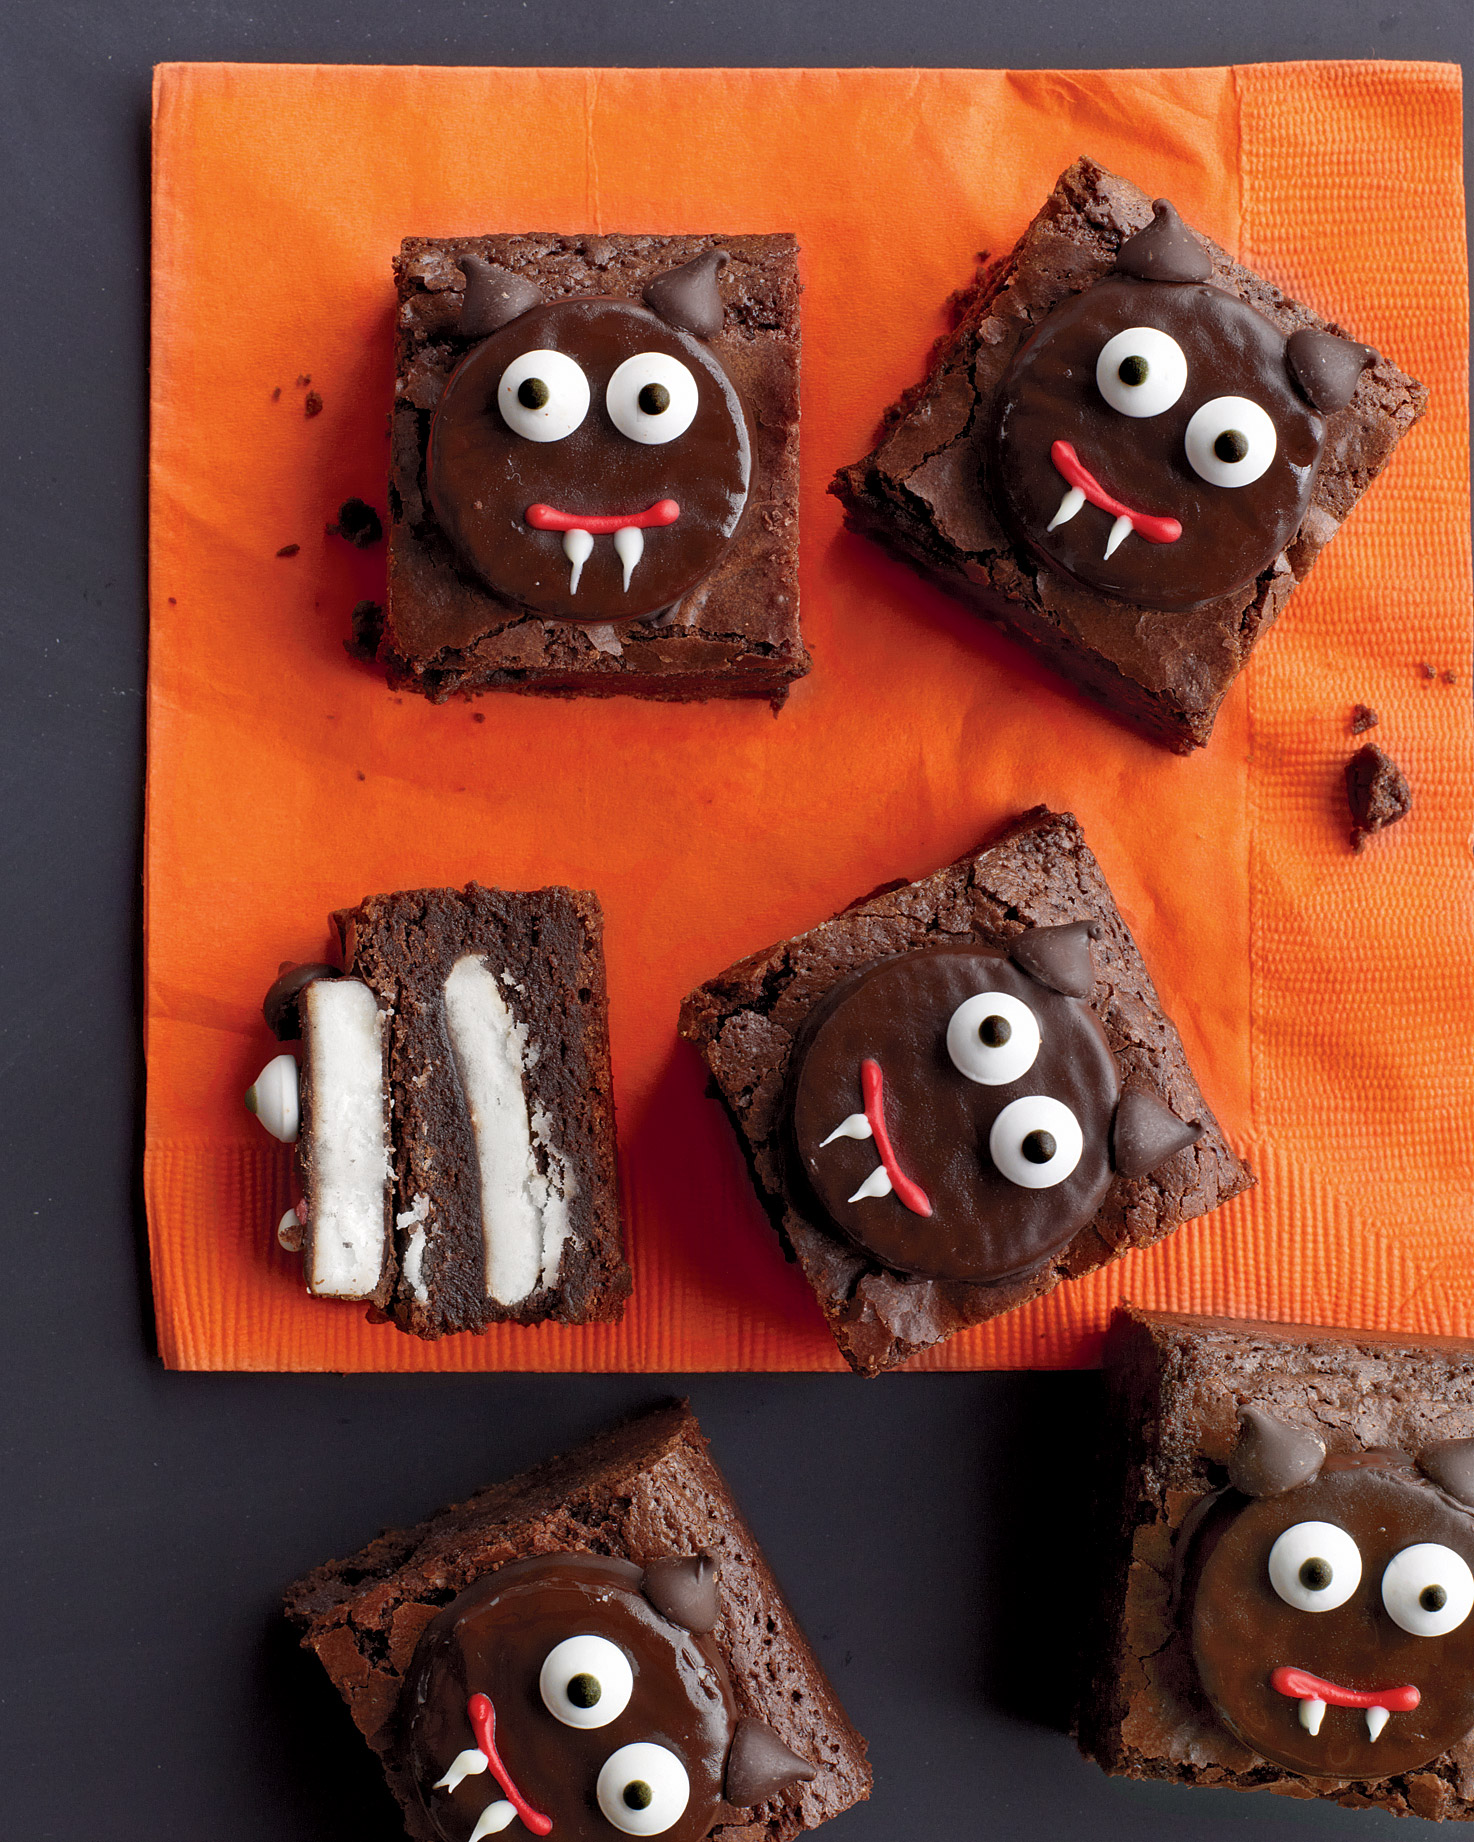 20 Hauntingly Good Halloween Potluck Recipes